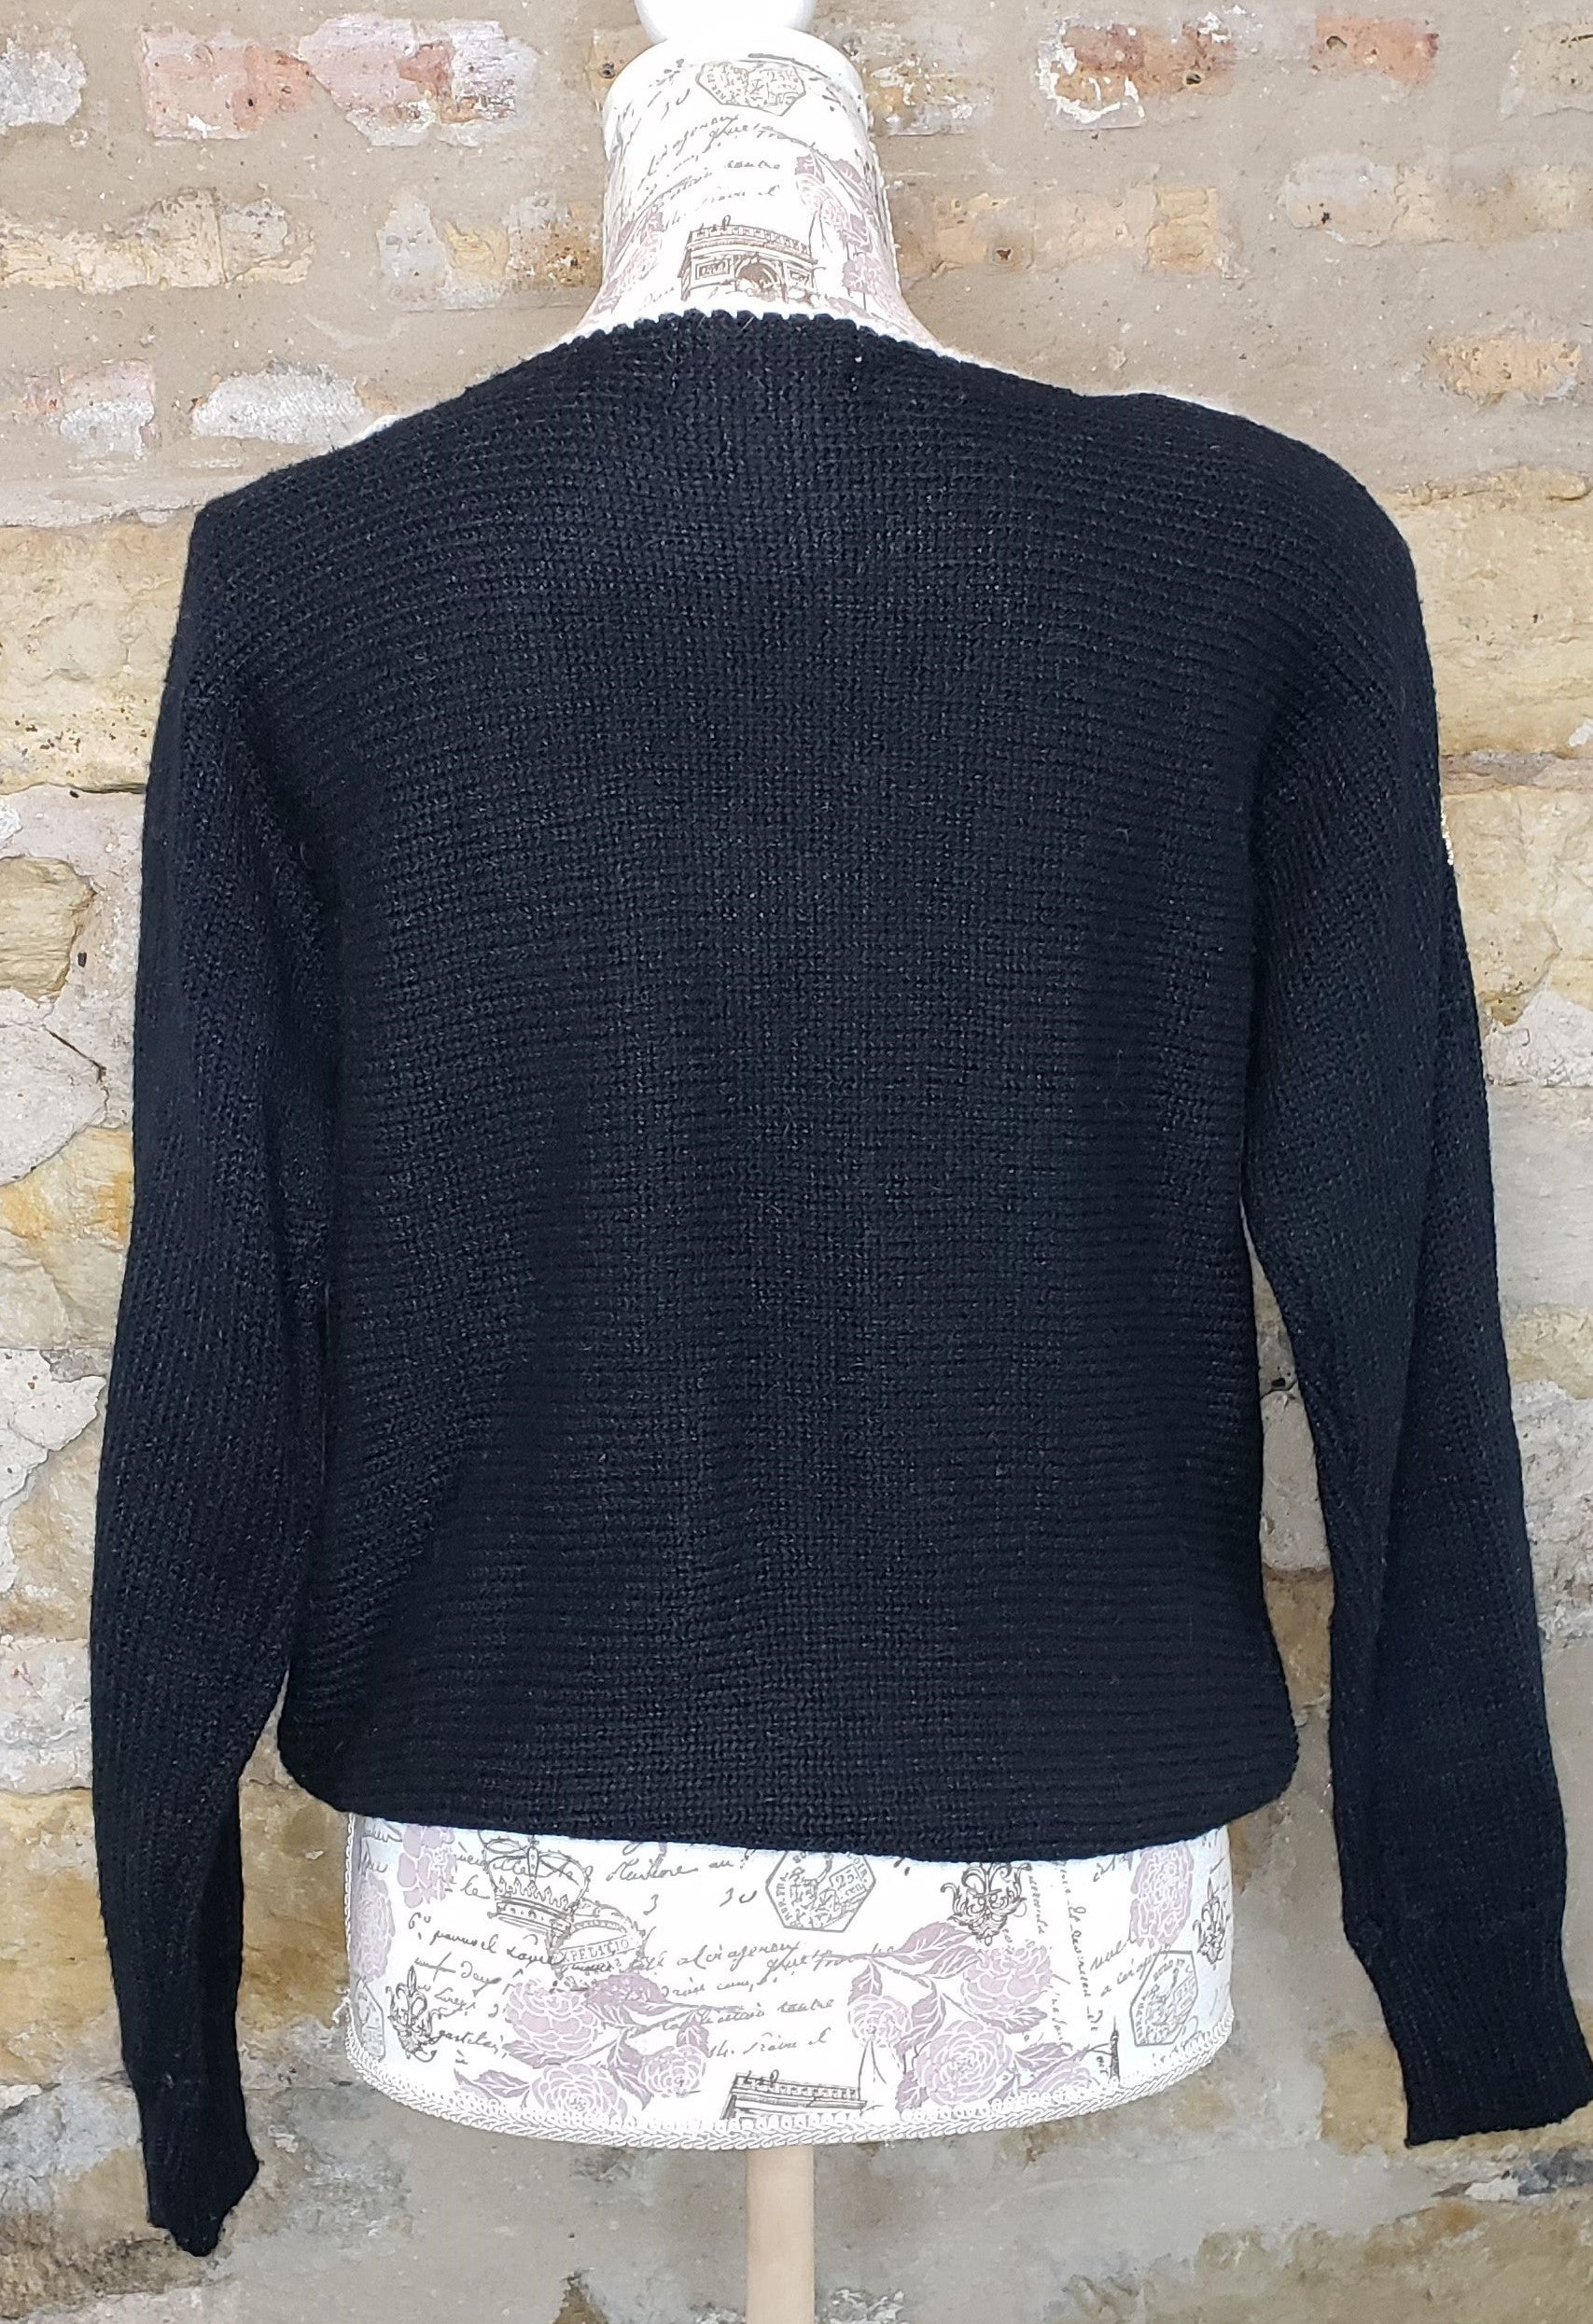 Vintage Black and Gold Sweater Sz M